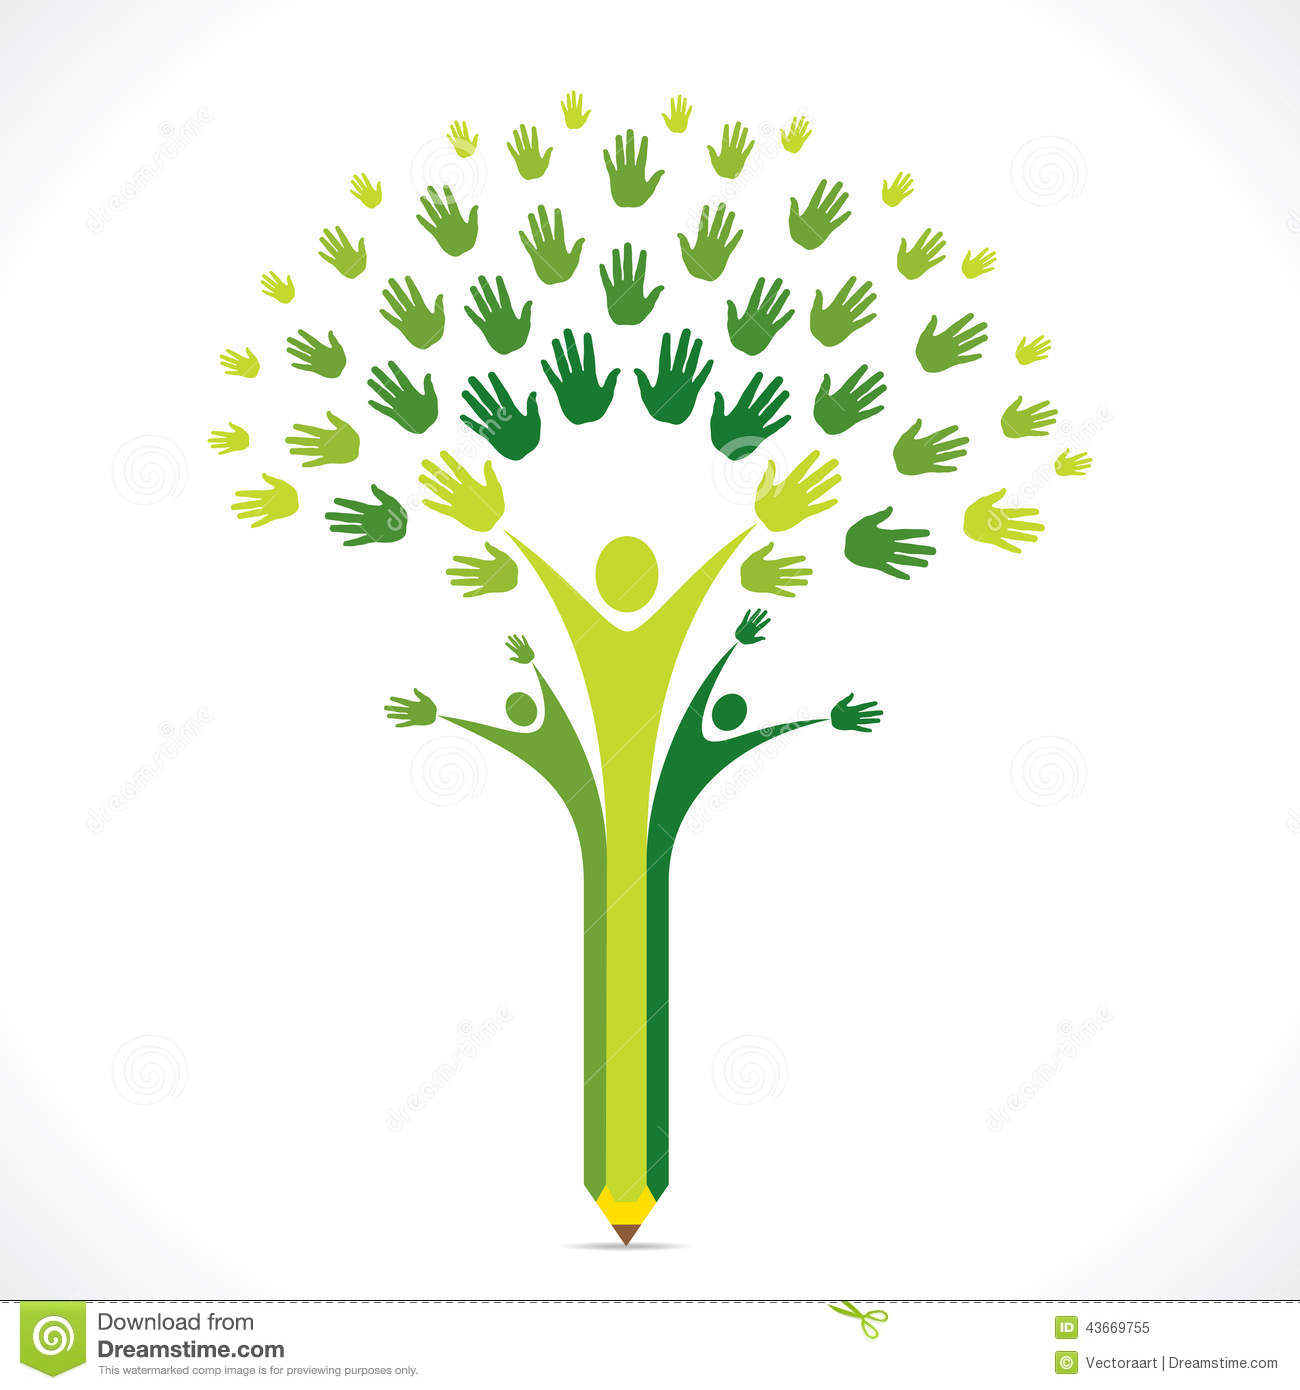 Helping Hands Tree Clipart.